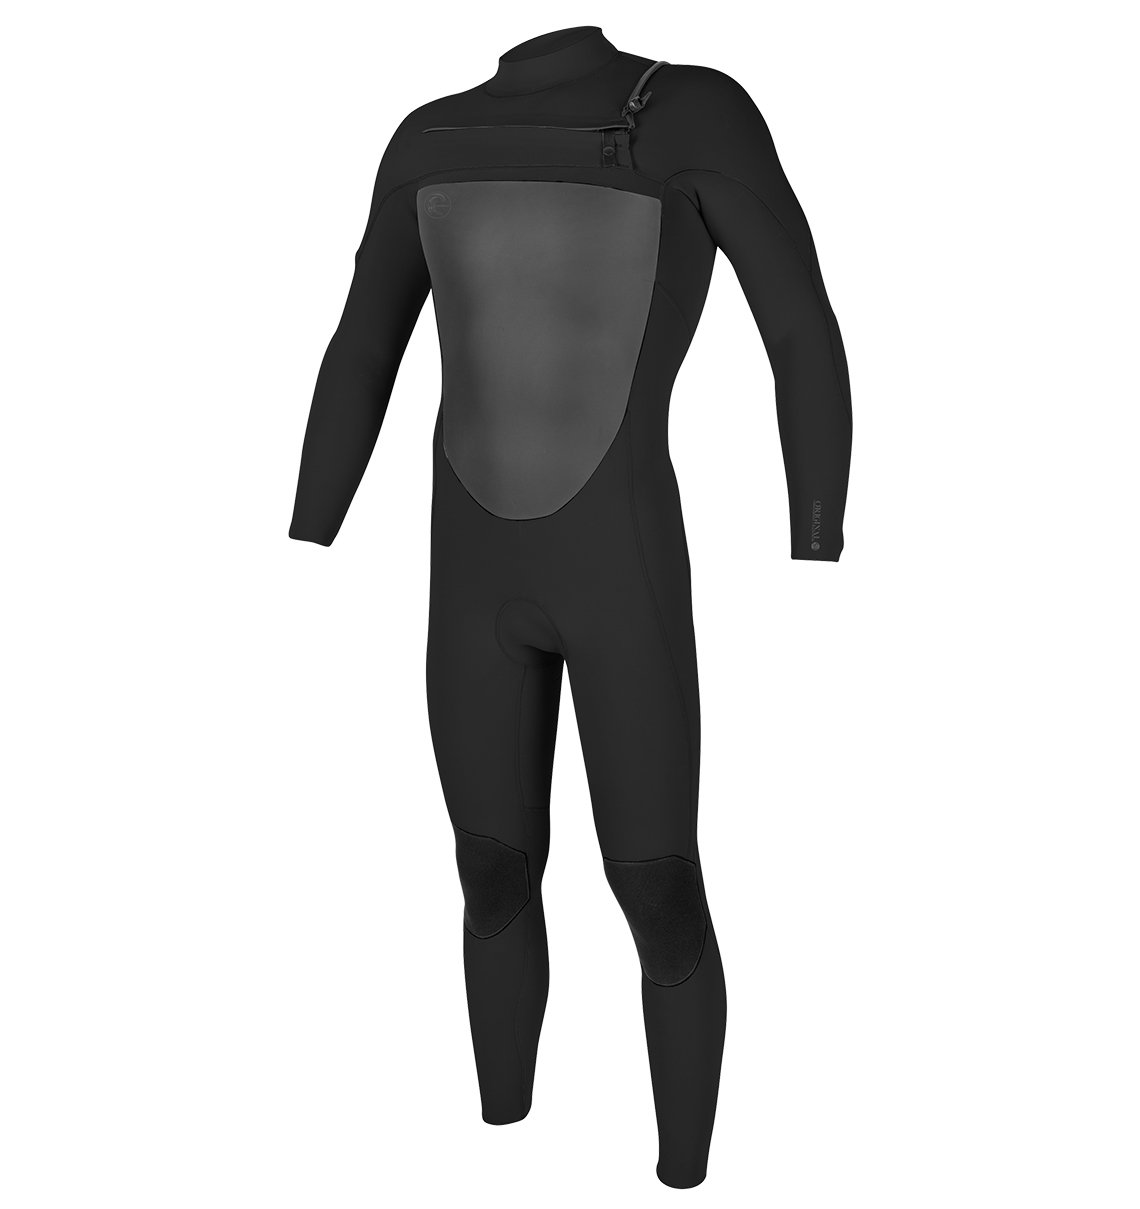 O'Neill Men's O'Riginal 4/3mm Chest Zip Full Wetsuit, Black/Black, X-Small by O'Neill Wetsuits (Image #1)